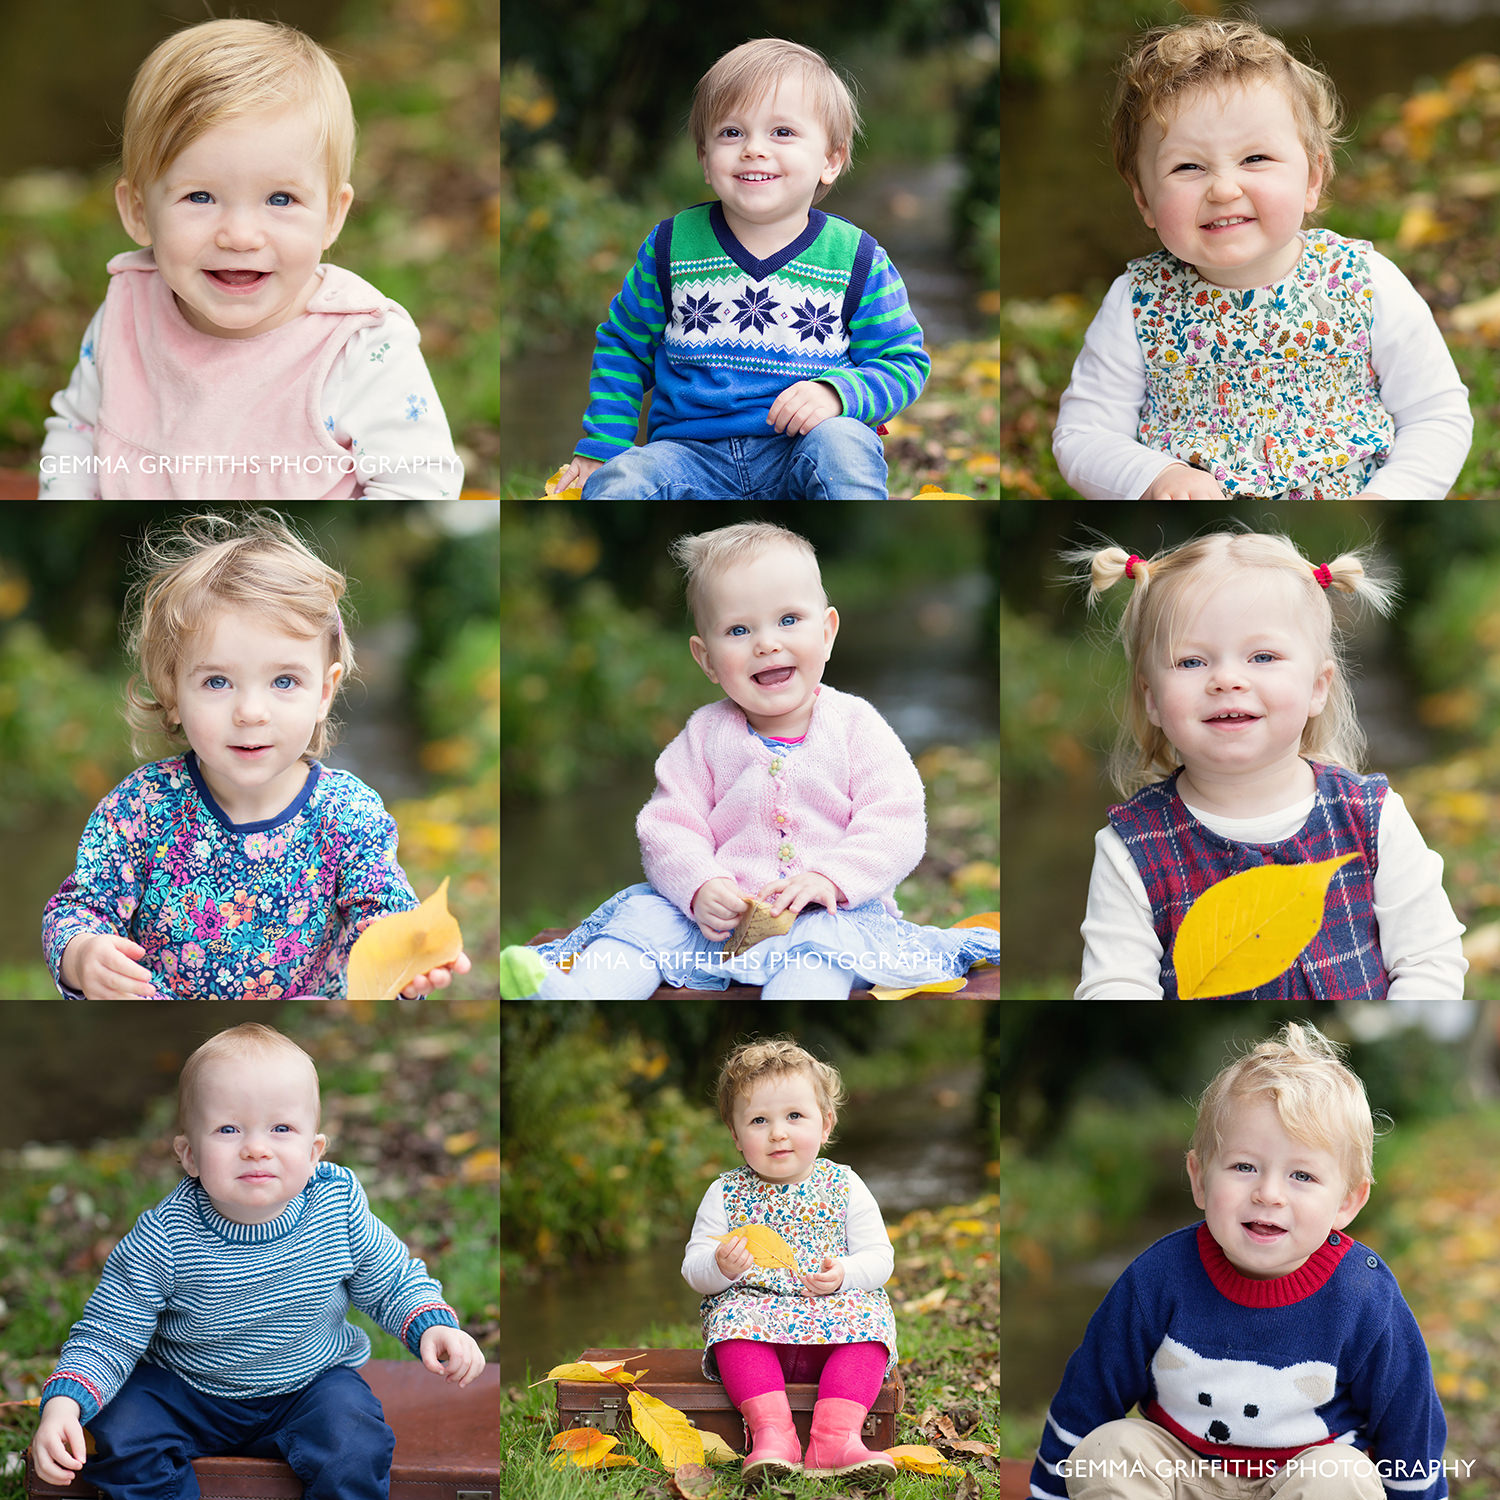 Playgroup photography by Gemma Griffiths Photography